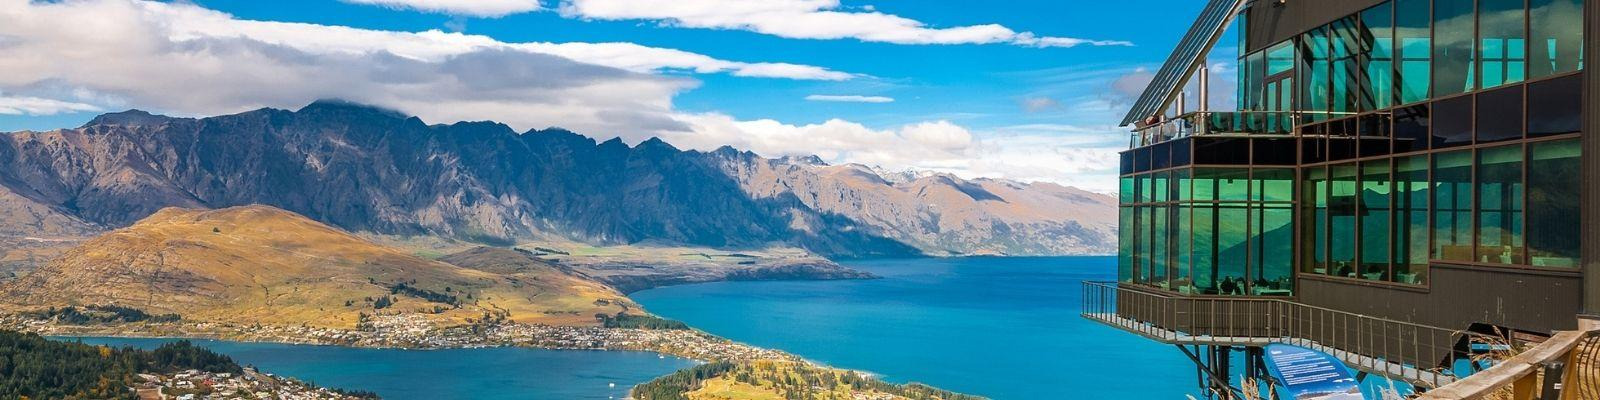 Where to Find the Best Views in Queenstown